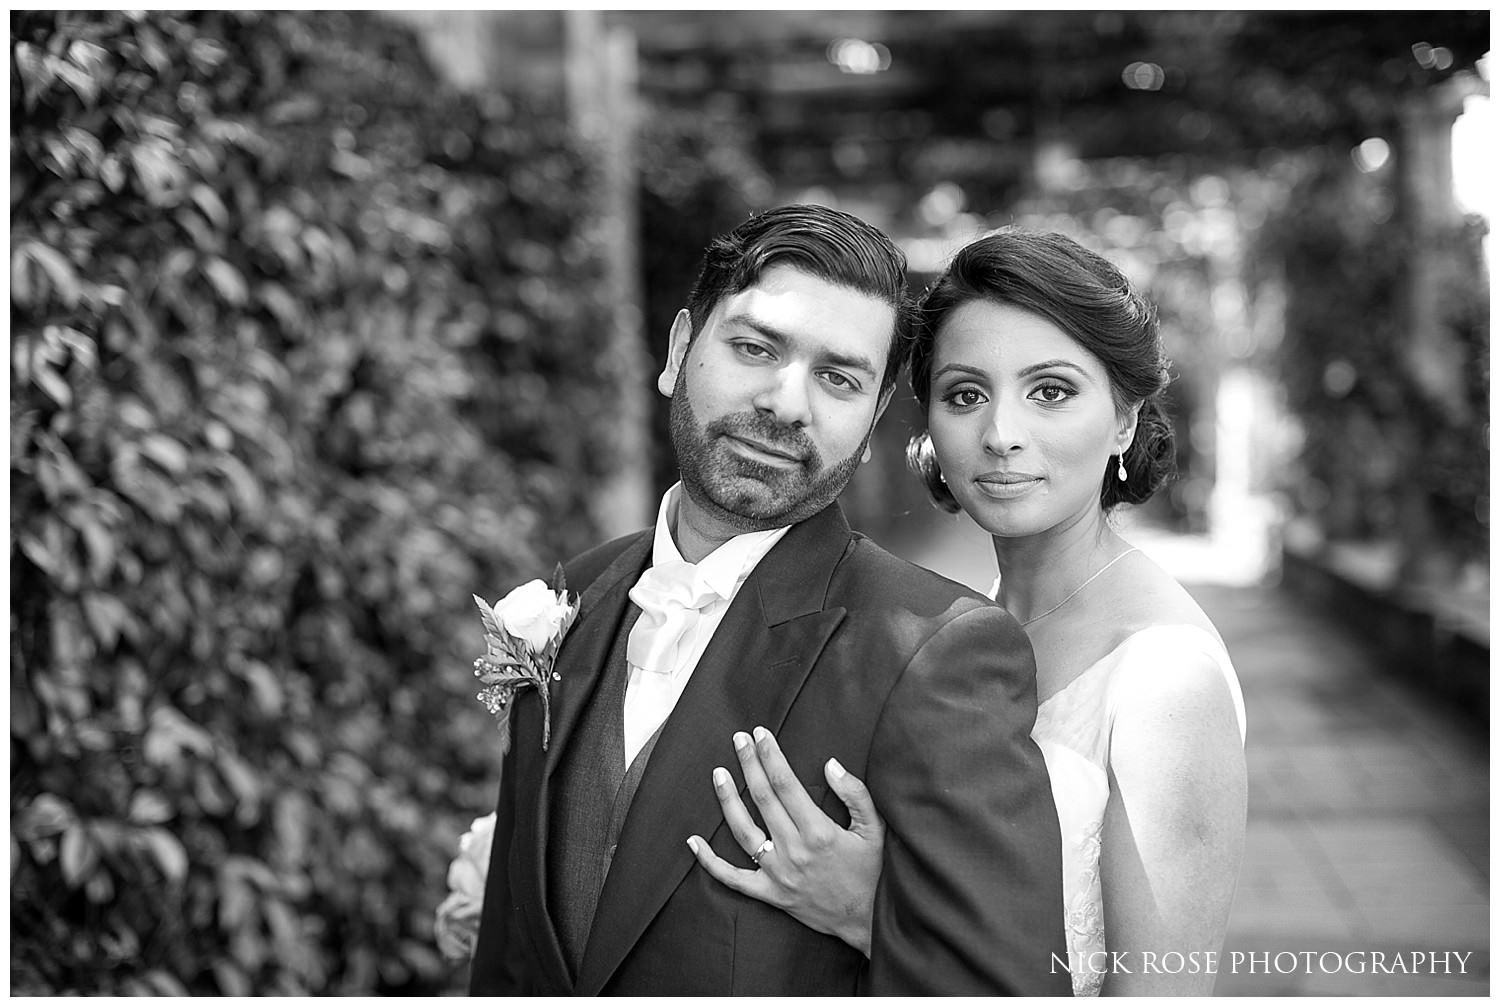 Bride and groom wedding photography portrait at Hever Castle Kent